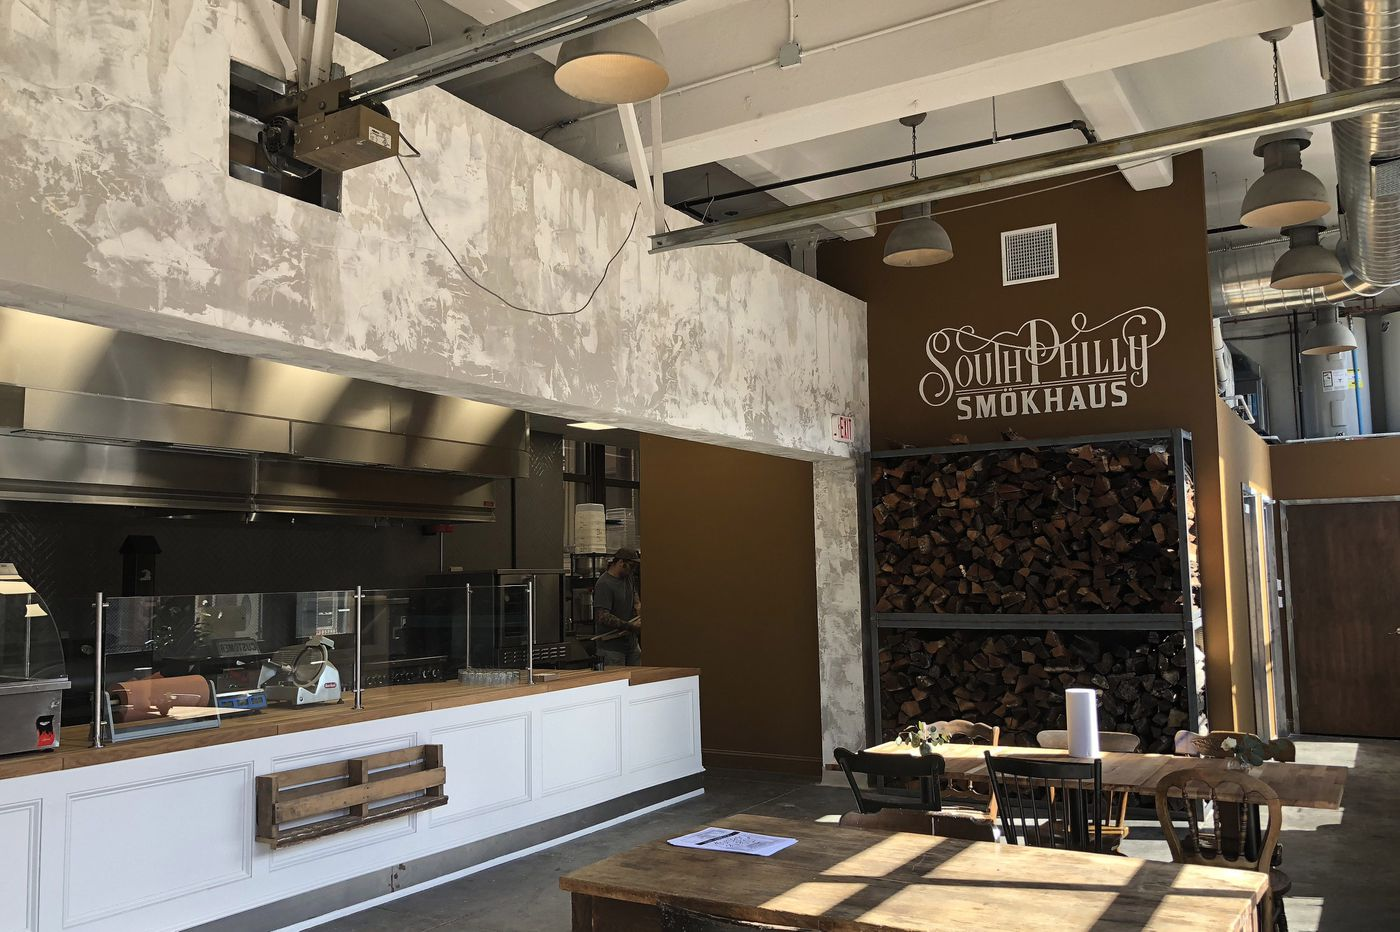 Meeting of meats: South Philly Smokhaus and Passio Prime at the Bok